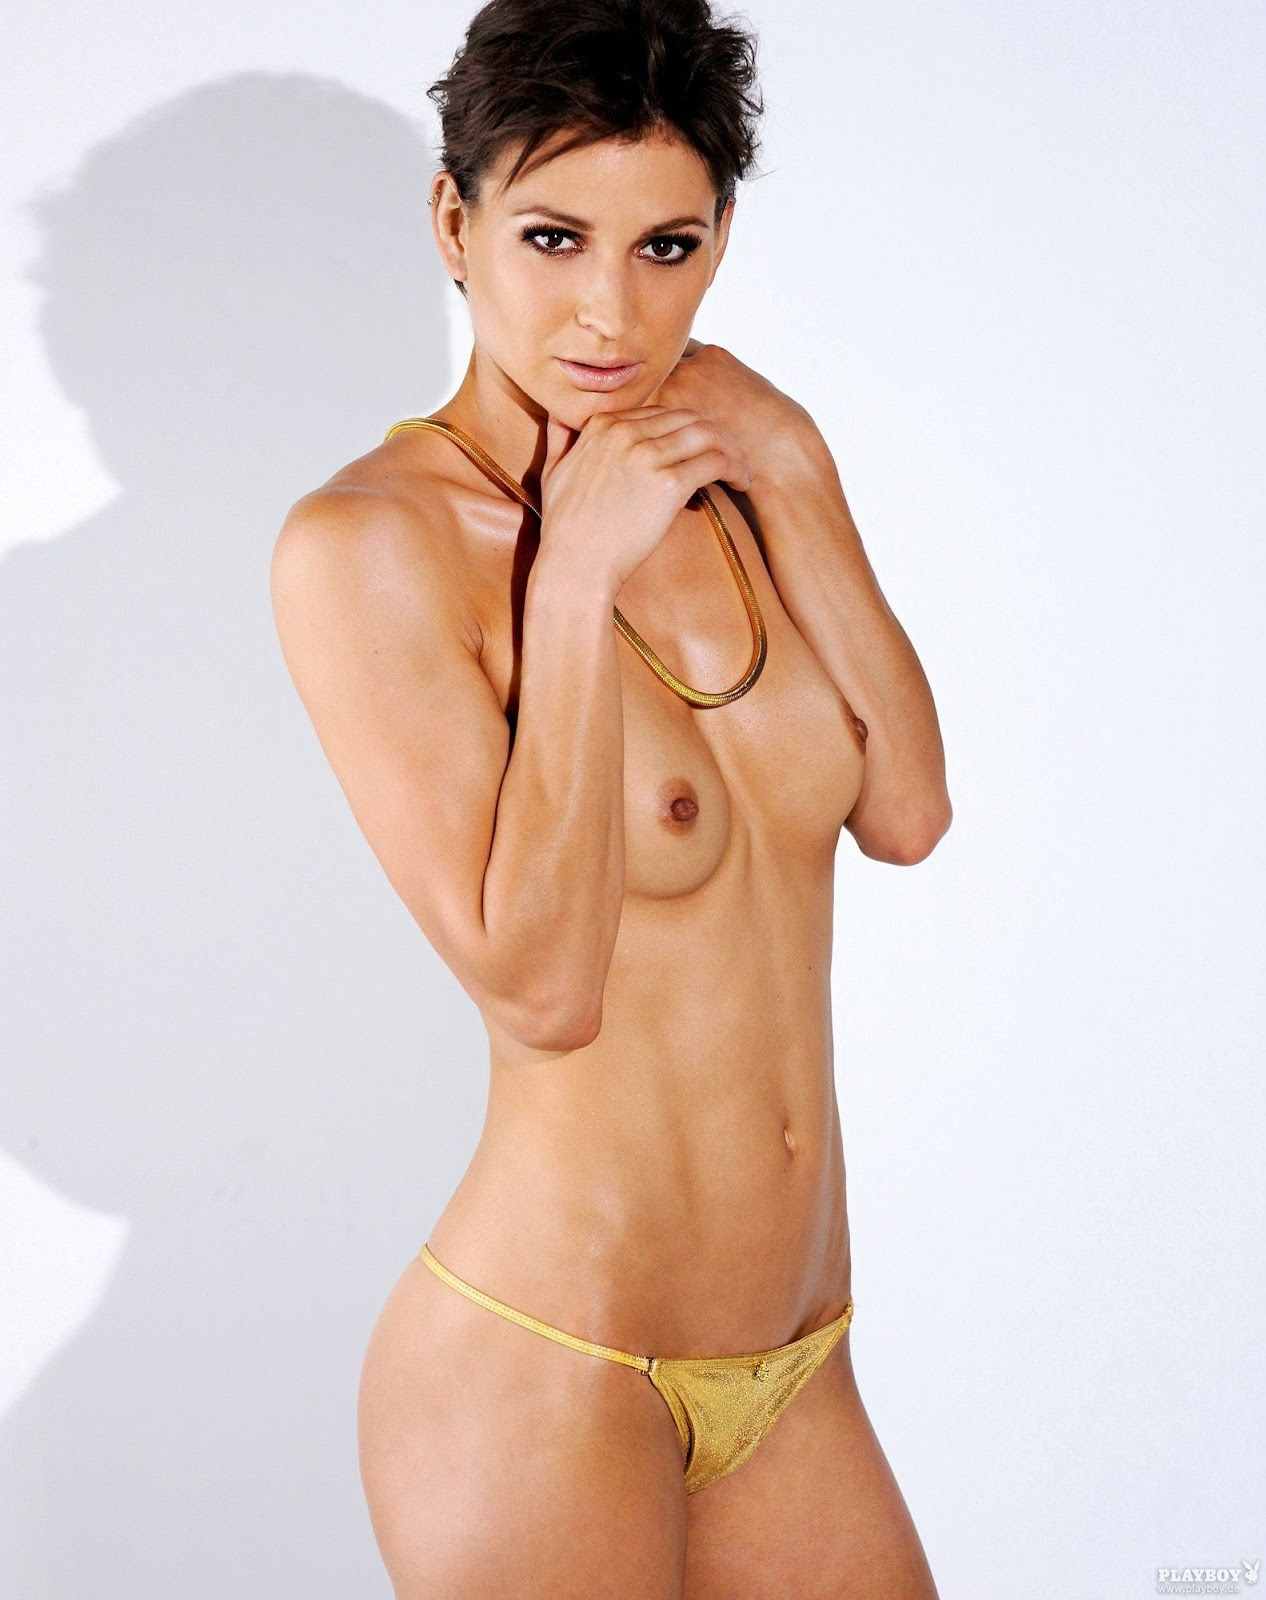 Germany Diver Christine Steuer Nude 2  Sexy Sportwoman -1794